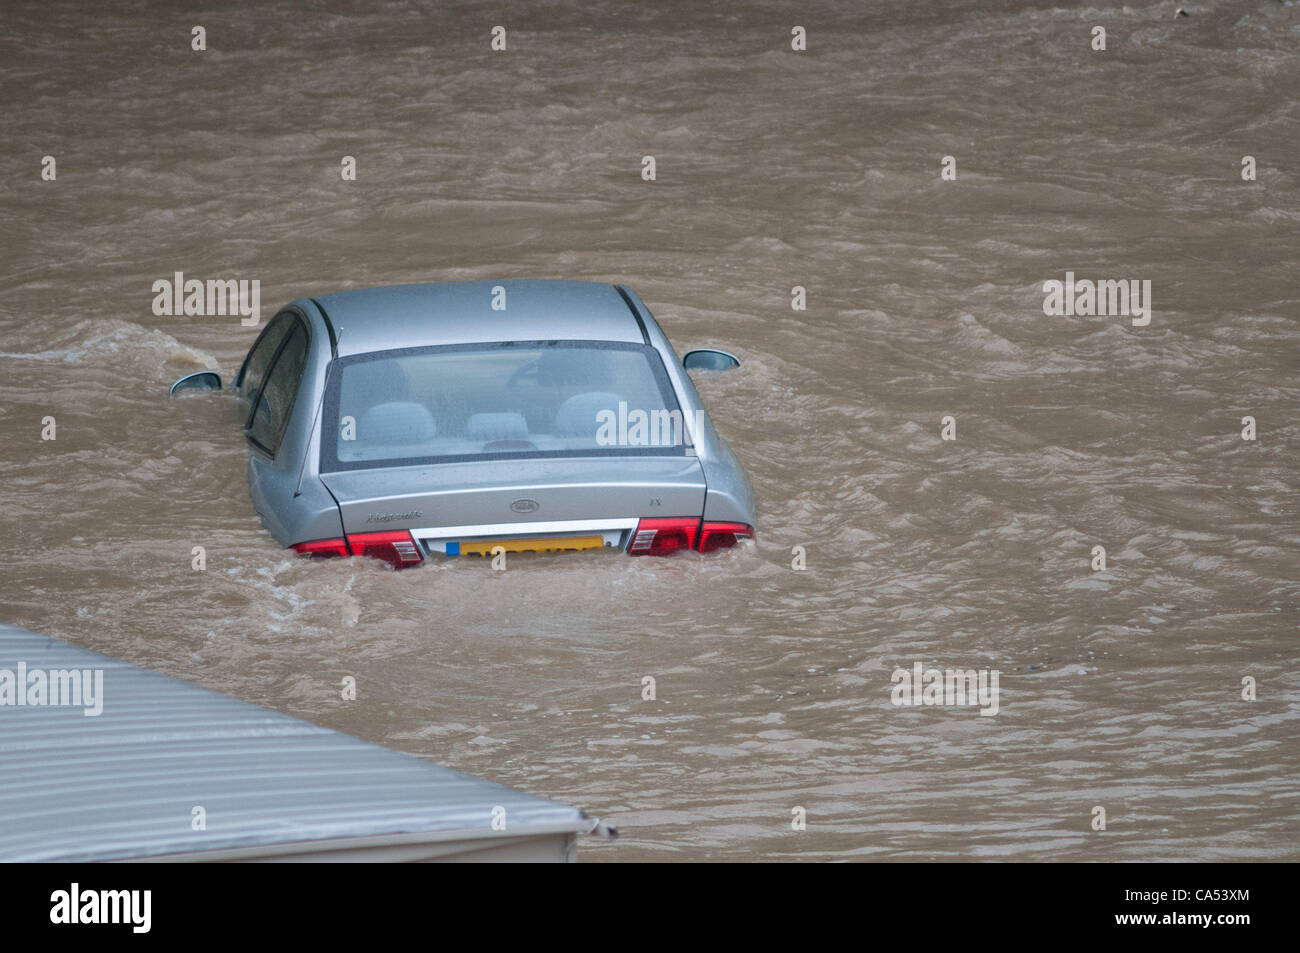 Ceredigion, Wales, UK. Saturday June 9 2012. A car is submerged by the waters of the River Leri at the Riverside Stock Photo